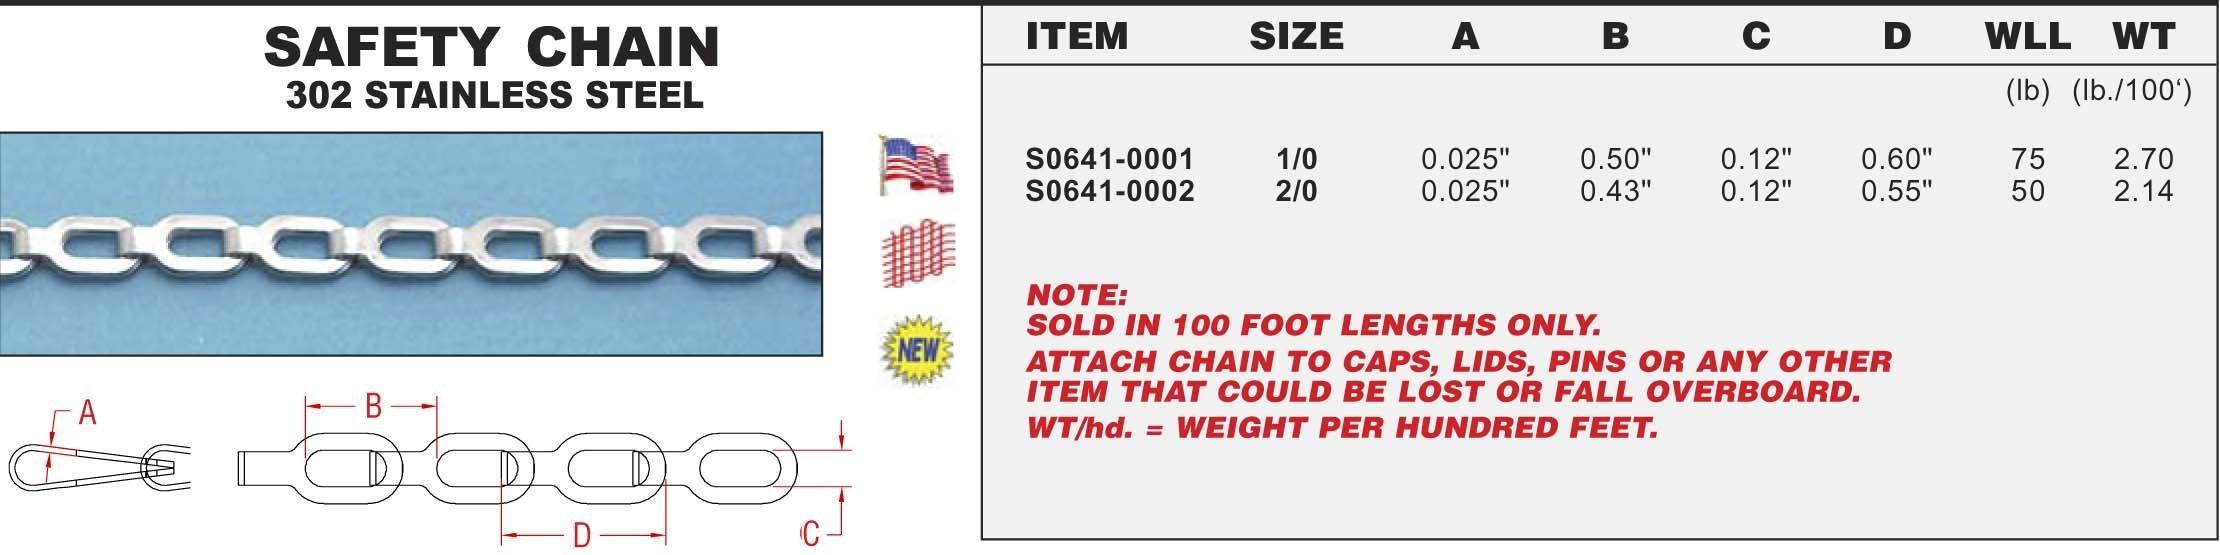 302 Stainless Steel Safety Chain 2/0 (S0641-0002)